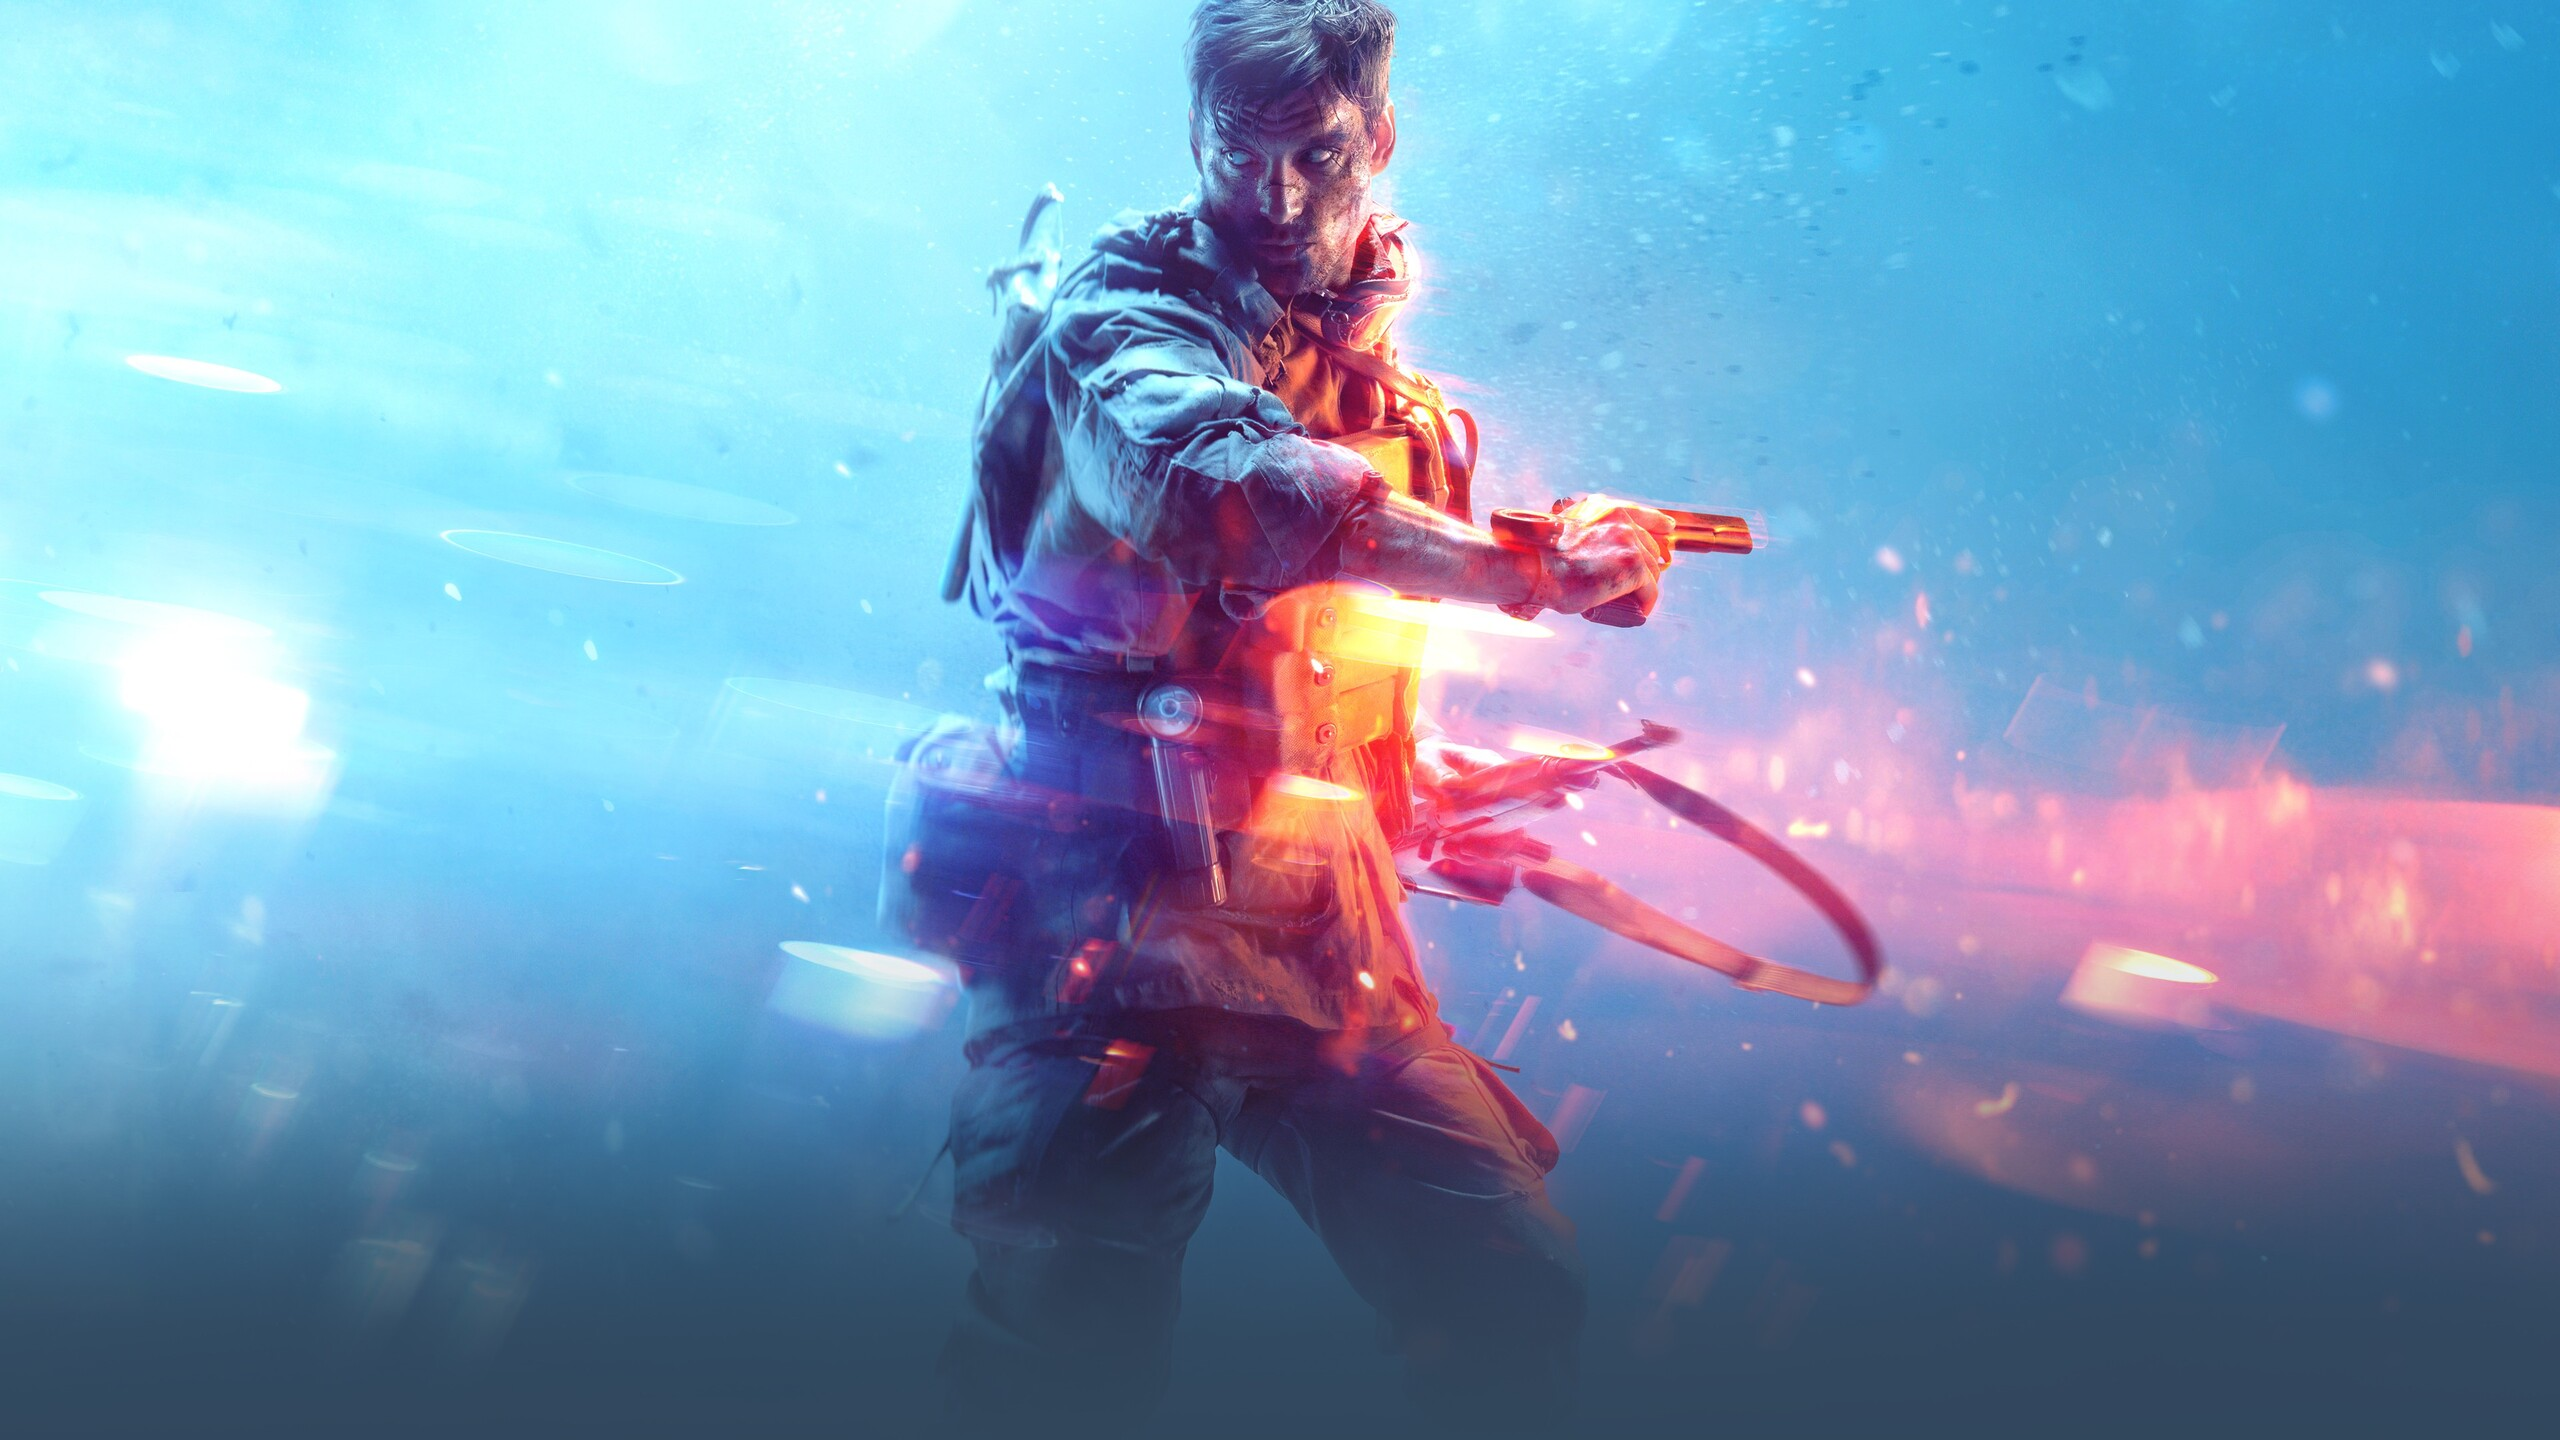 2560x1440 Battlefield V 4k 1440p Resolution Hd 4k Wallpapers Images Backgrounds Photos And Pictures